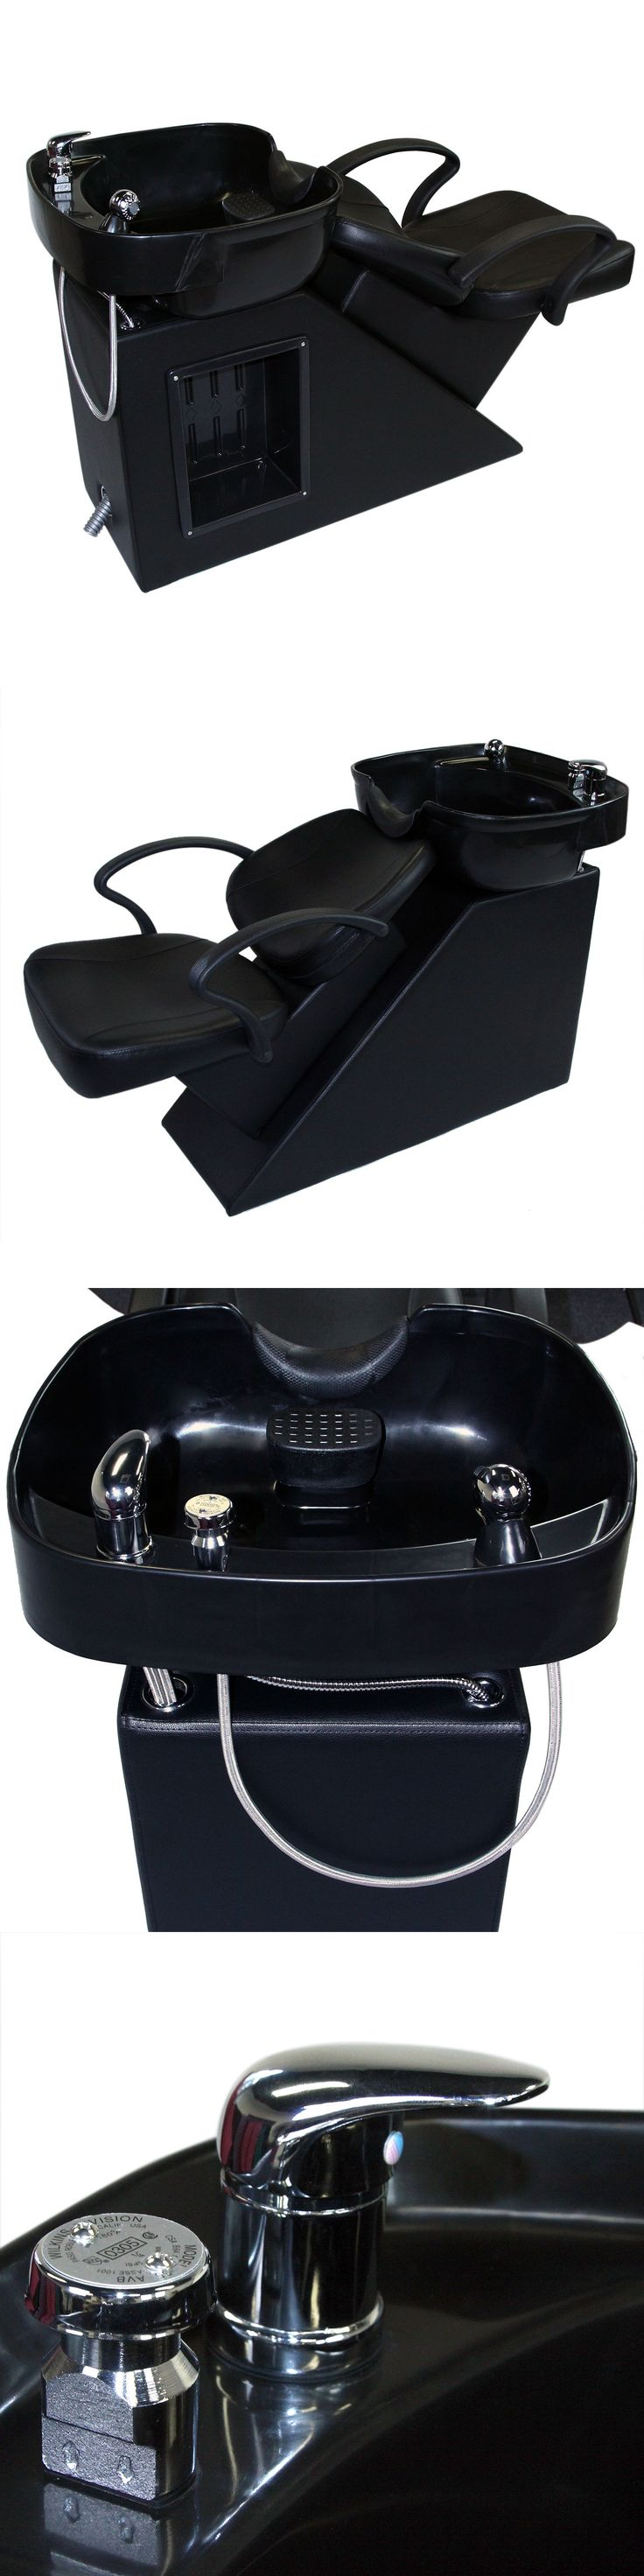 Other Salon and Spa Equipment: Bowl Barber Sink Shampoo Backwash Chair Beauty Salon Equipment Reclining Station -> BUY IT NOW ONLY: $191.5 on eBay!